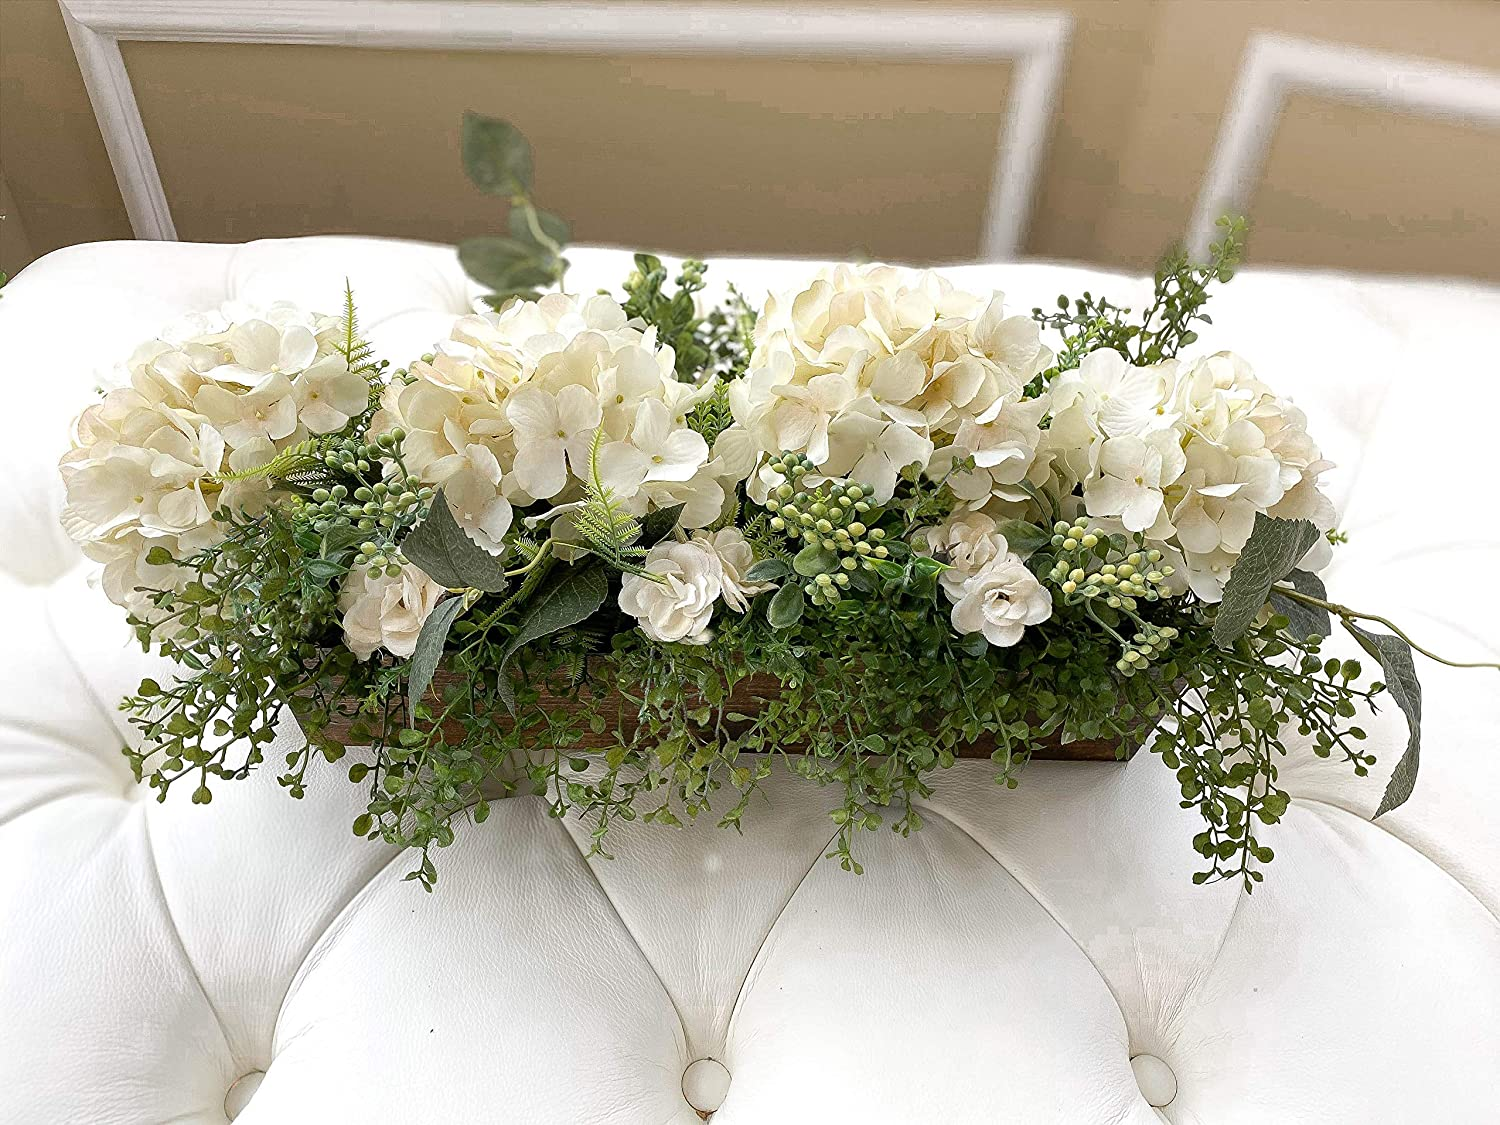 Farmhouse Hydrangea Centerpiece With Greenery Silk Flower Dining Table Center Piece Kitchen Island Centerpiece Mantel Decor Handmade